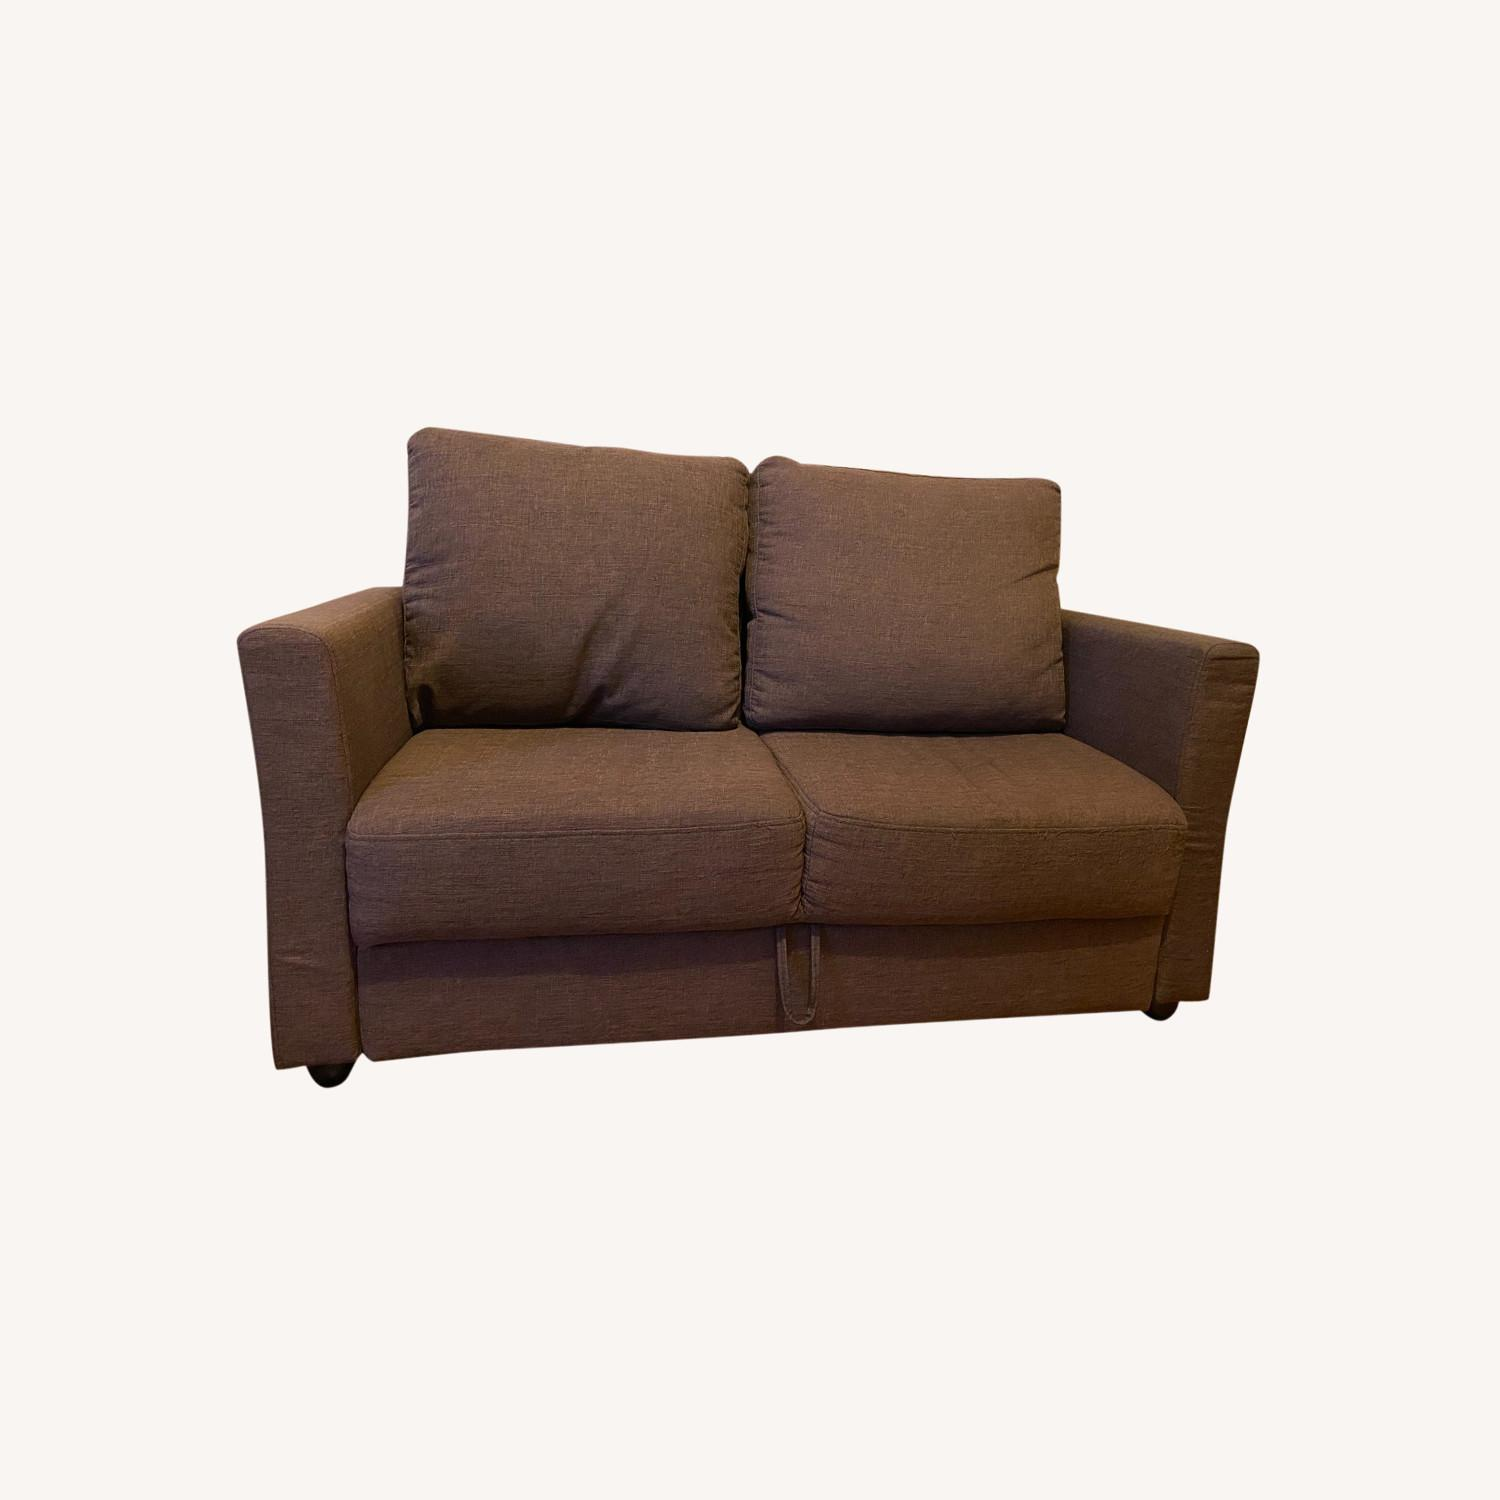 Two Seater Sofa with Storage - image-0